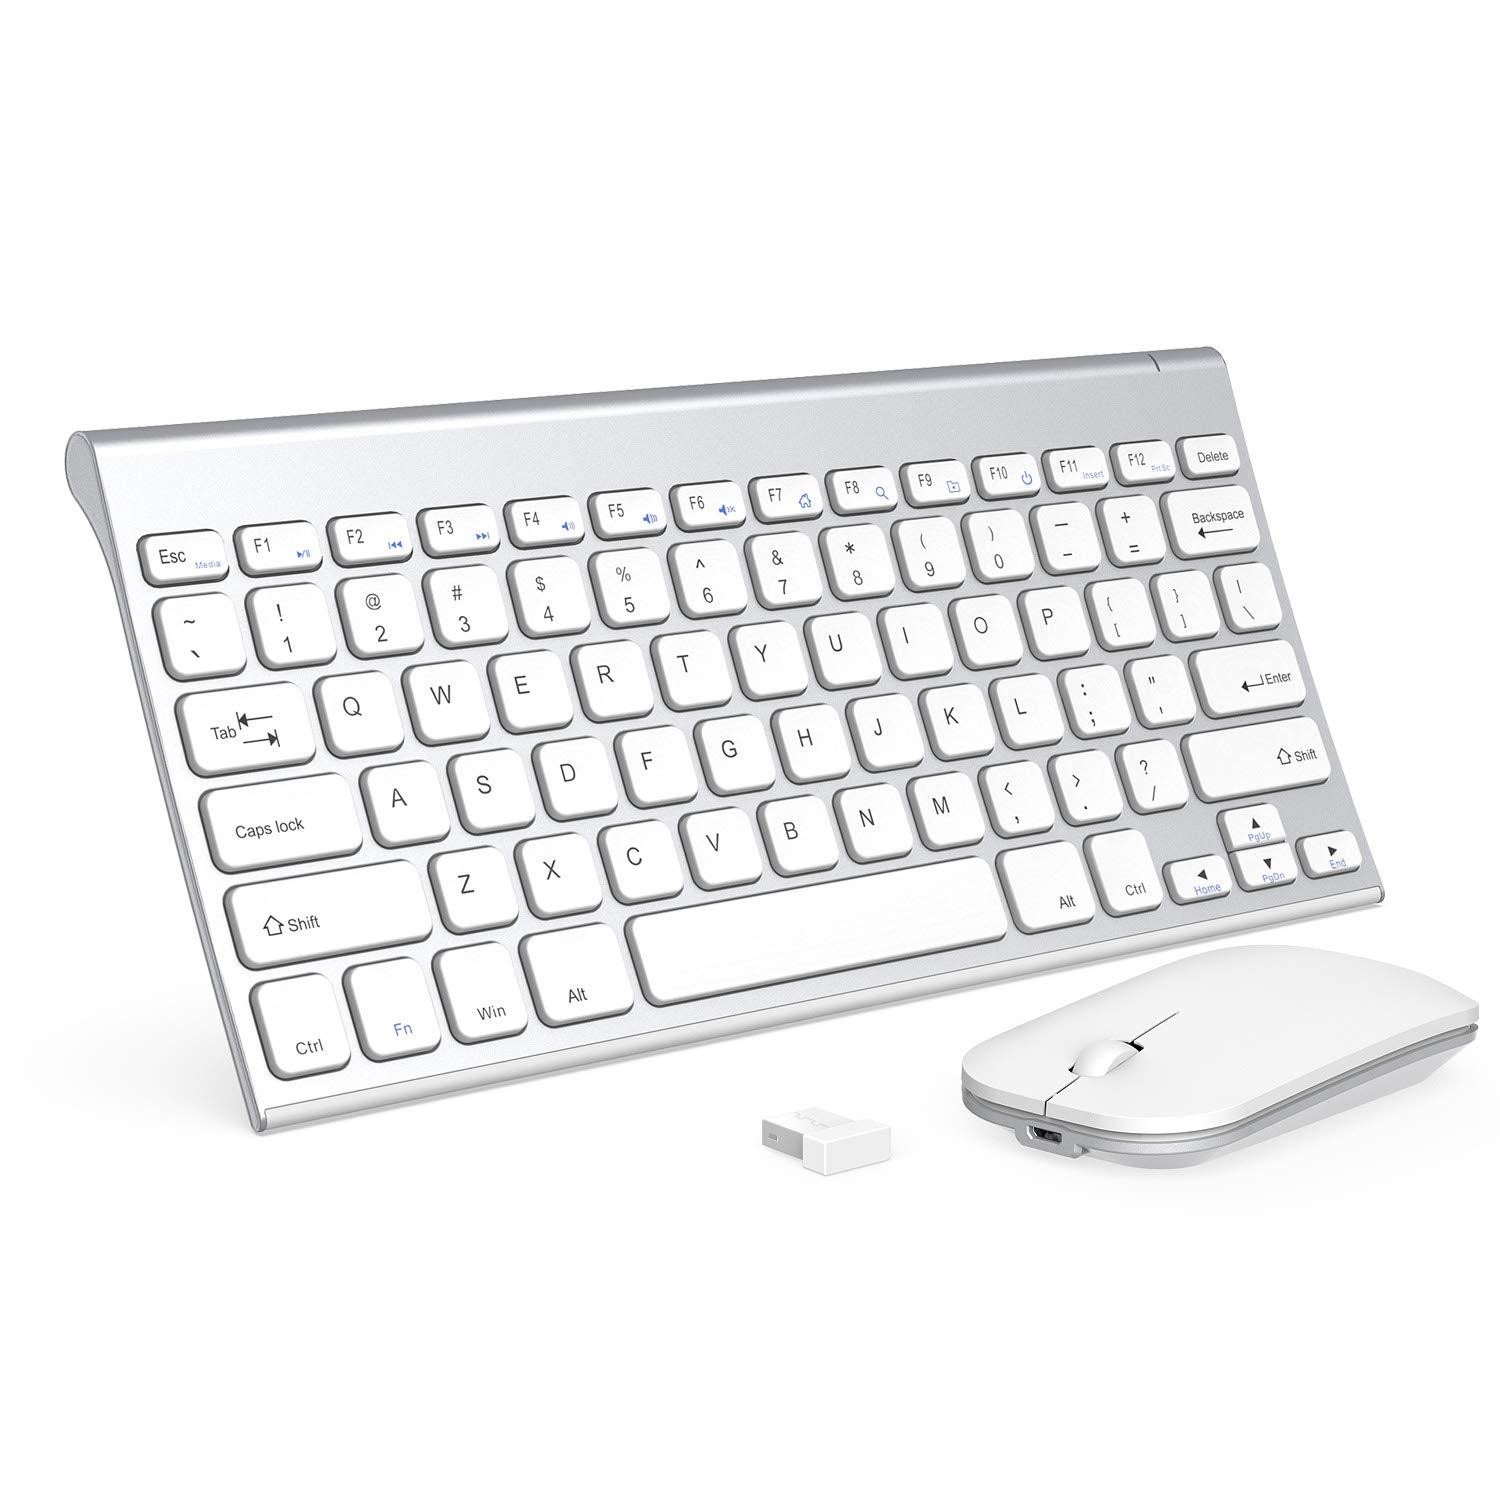 Wireless Keyboard and Mouse Combo,Seenda 2.4G Ultra Compact Rechargeable Wireless Keyboard and Mouse for Computer,PC,Desktop,Windows XP/Vista/7/8/10,White and Silver